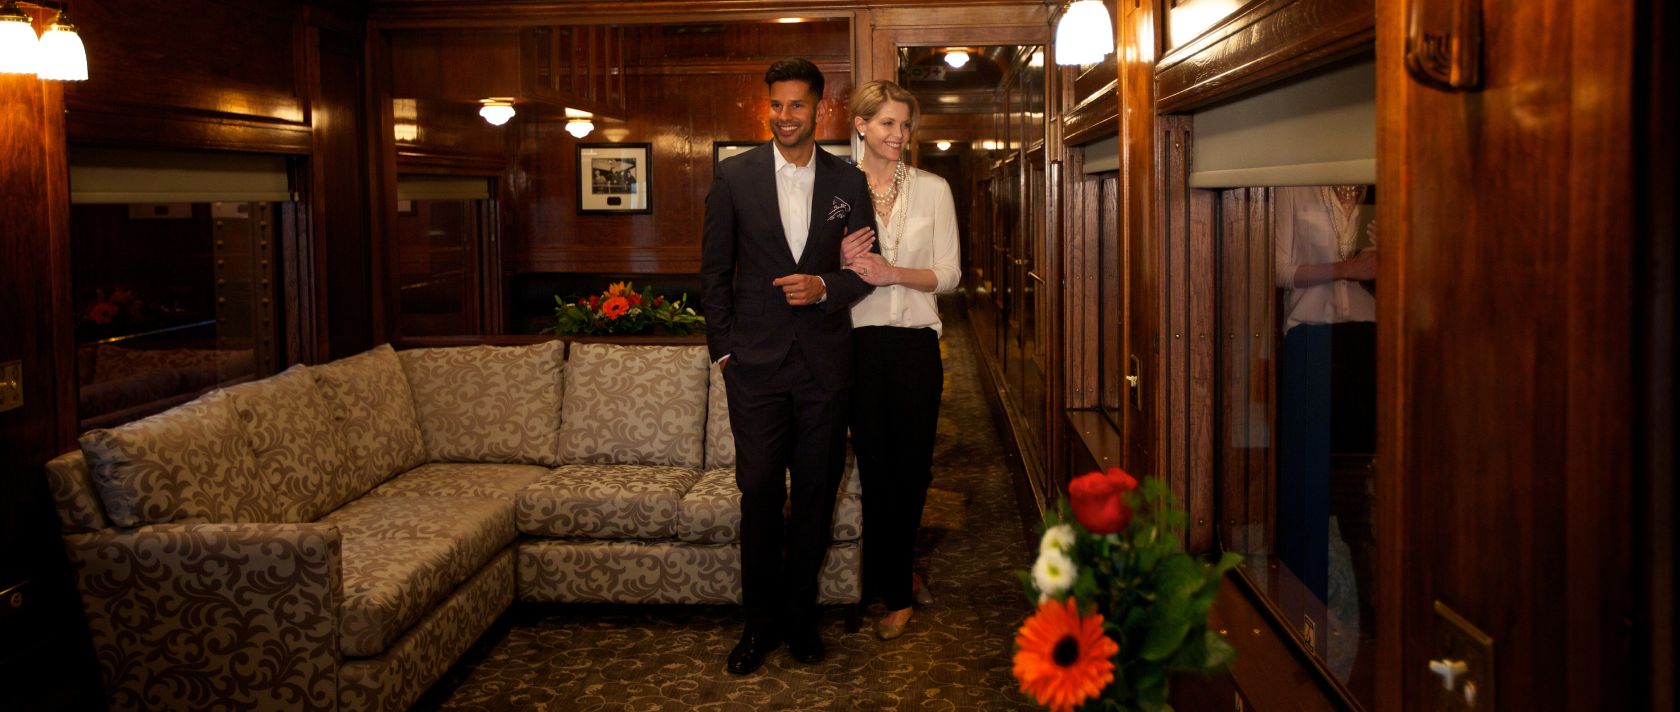 A man and a woman stand in a lounging area inside of a rail car.